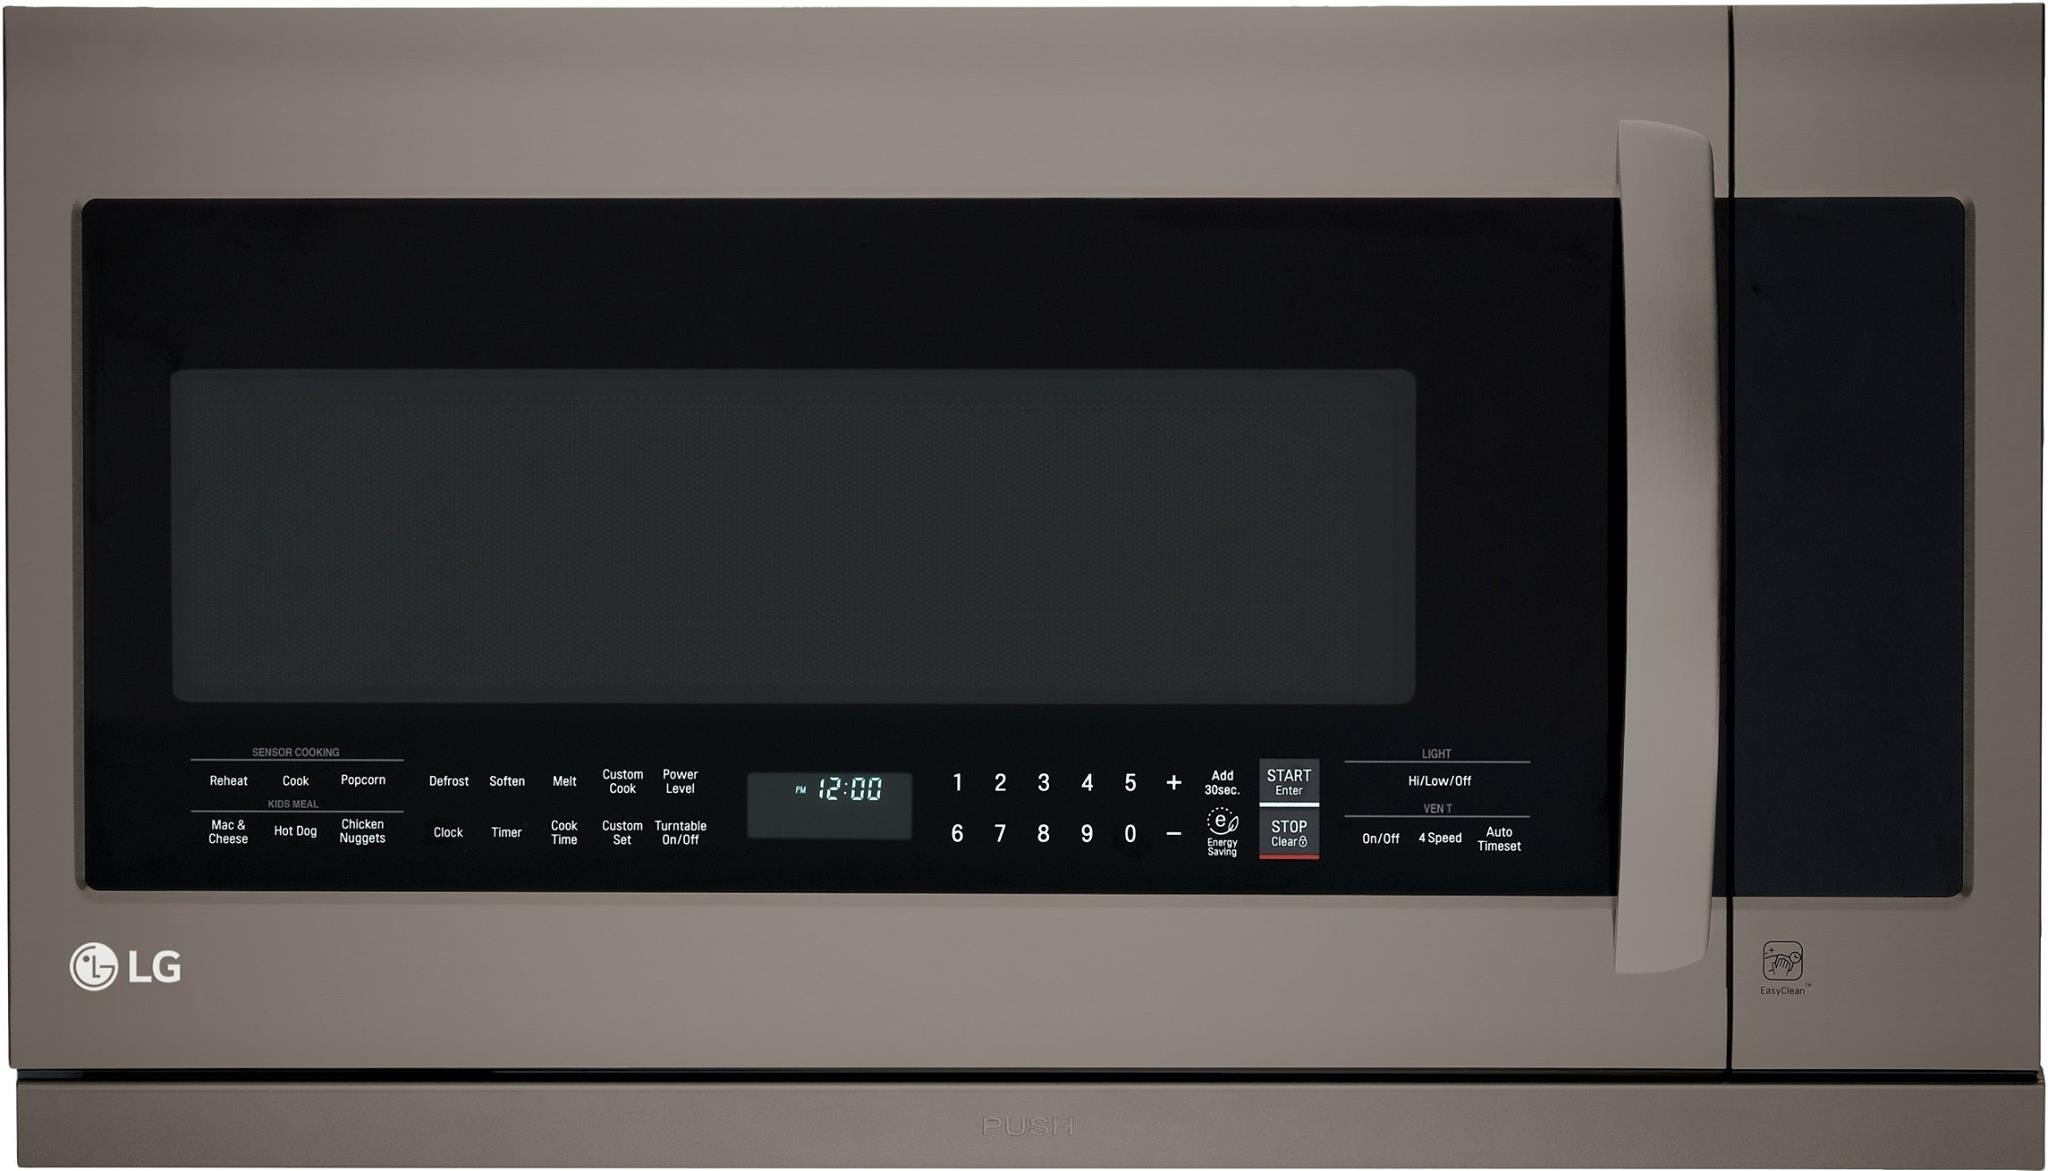 LG LMHM2237BD 2.2 cu. ft. Over-the-Range Microwave Oven with EasyClean by LG